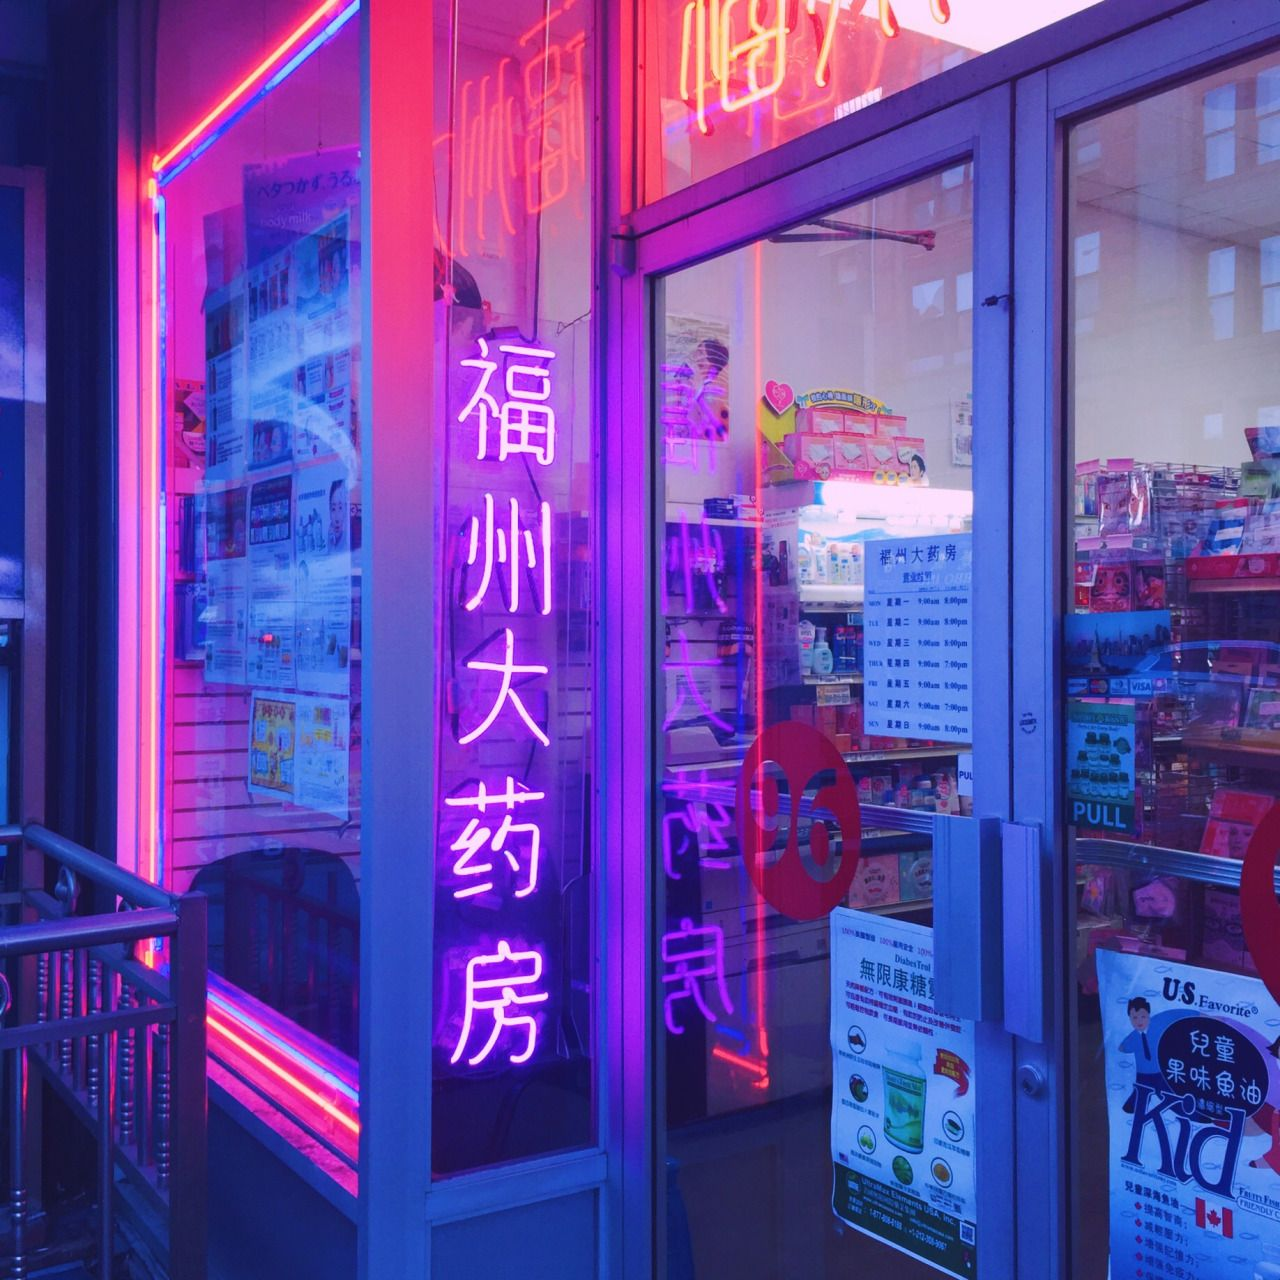 Turnt shoujo chinatown winter 2016 from the tumblr for 8 bit room decor